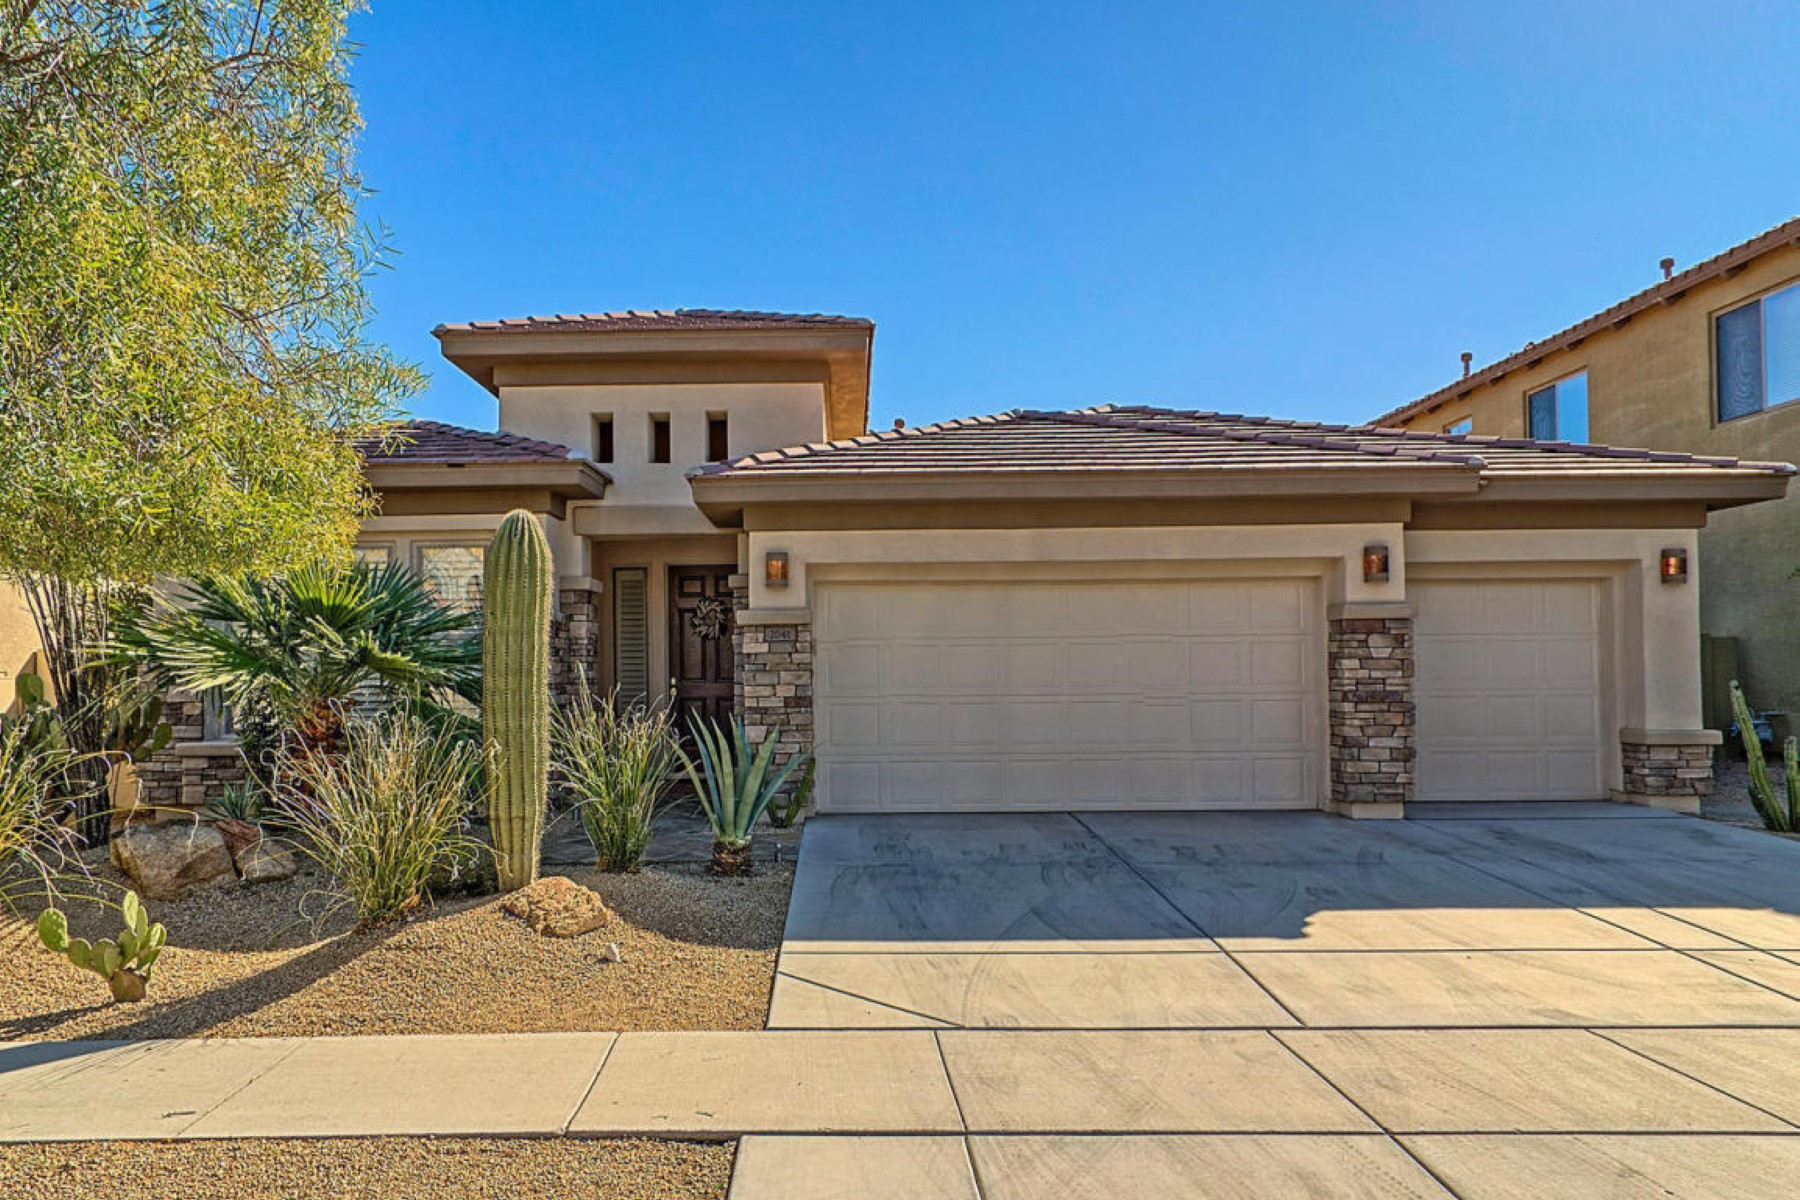 獨棟家庭住宅 為 出售 在 Meticulously maintained sought after 1 story home in gated Desert Crest 2041 W Gloria Ln Phoenix, 亞利桑那州, 85085 美國